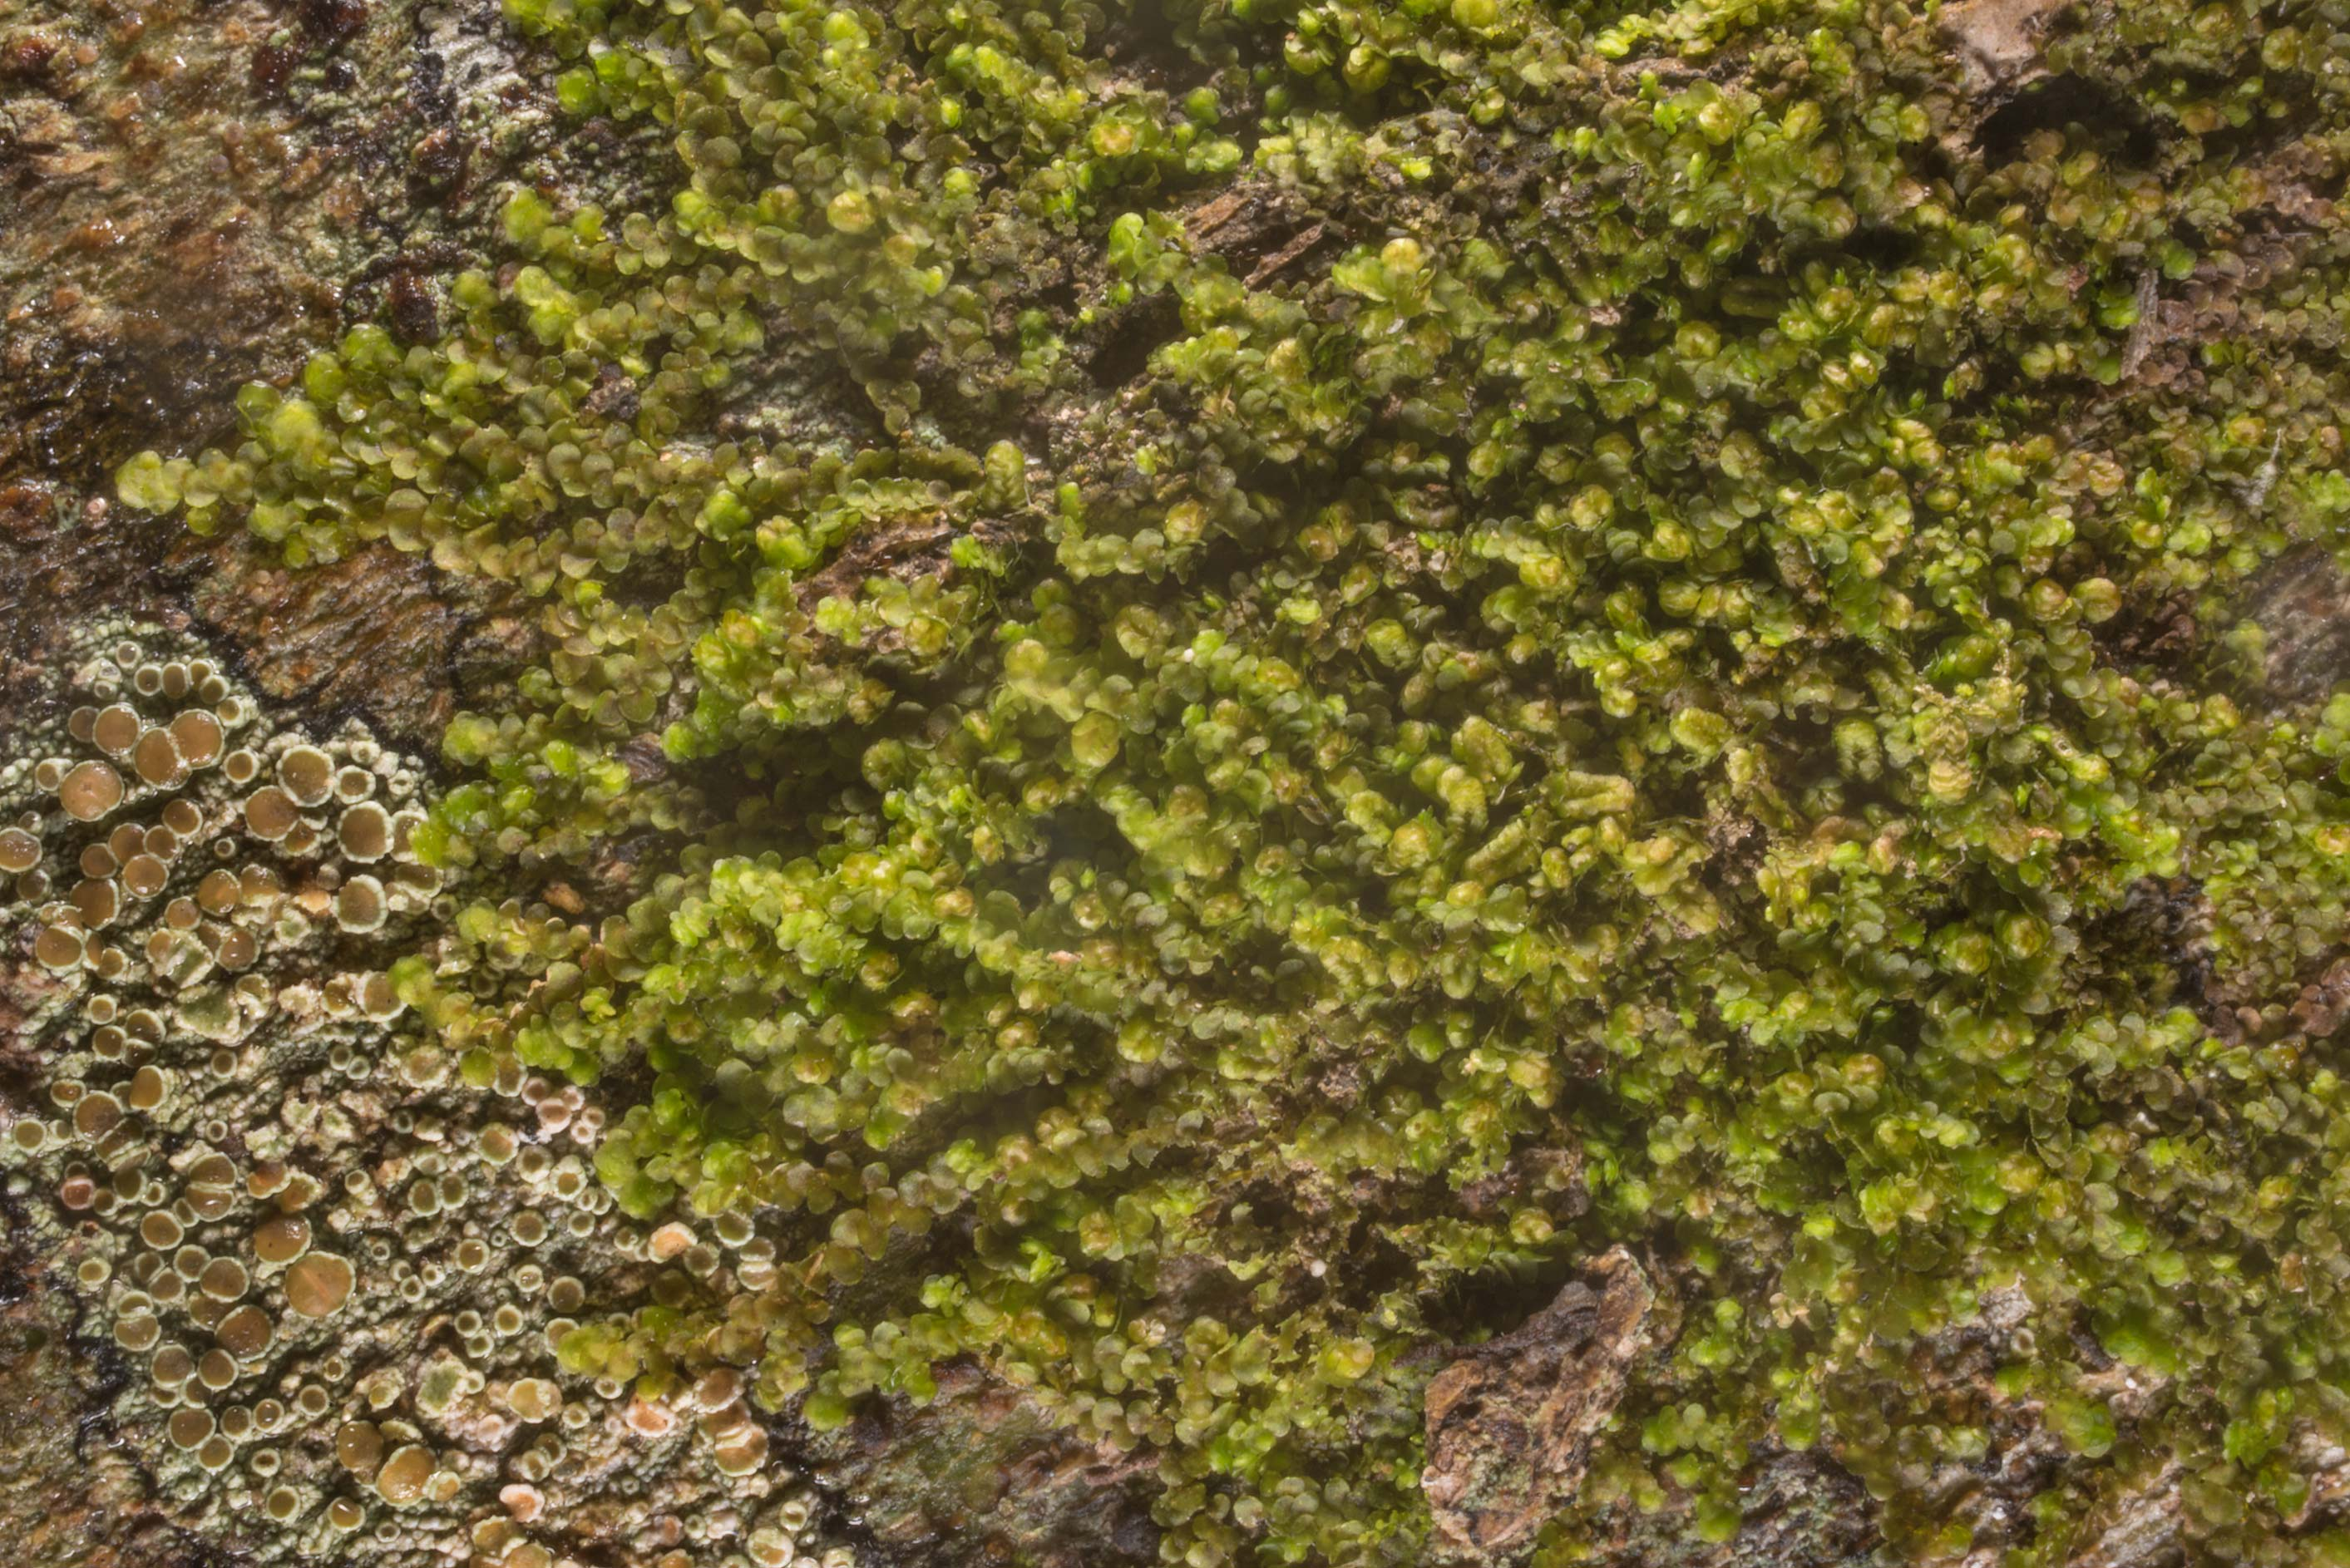 Some green liverwort and lichens on bark of...State Historic Site. Washington, Texas